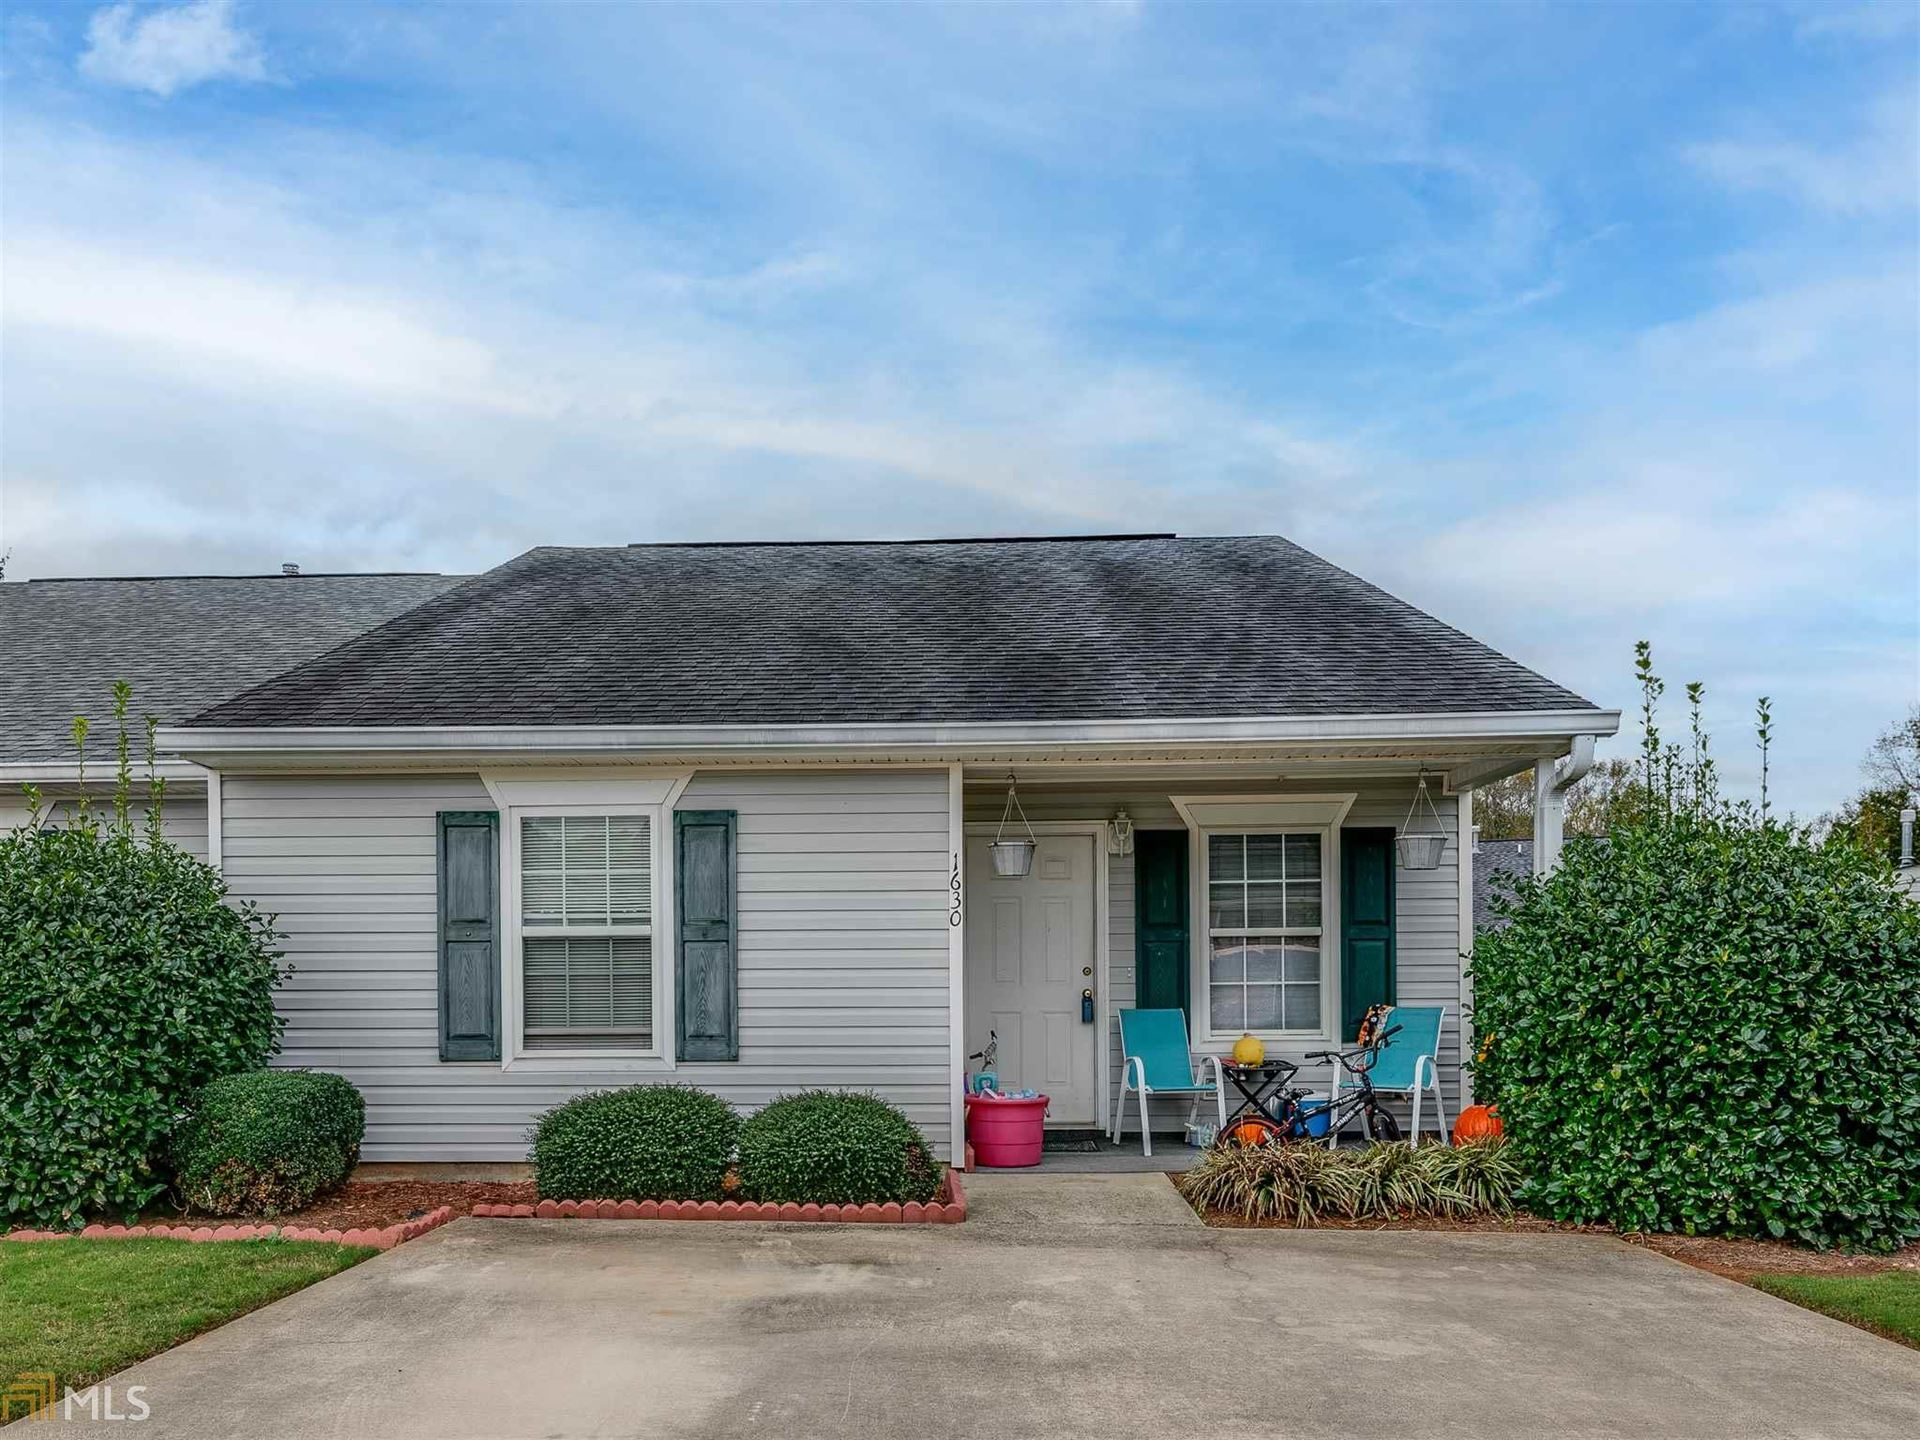 1630 Summerwoods Cir, Griffin, GA 30223 - MLS#: 8876100